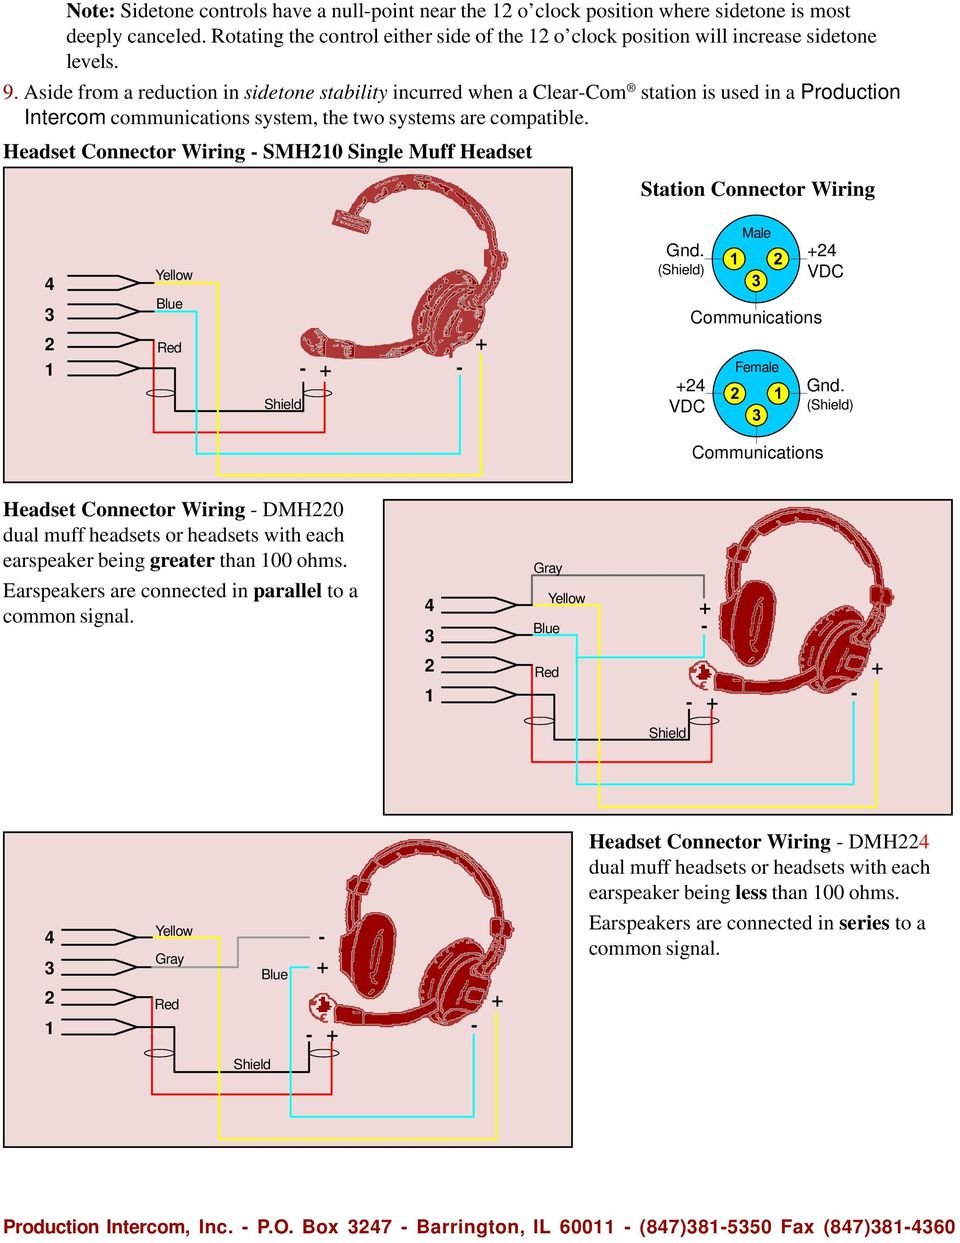 Headset Connector Wiring SMH0 Single Muff Headset Station Connector Wiring 4 () 4 Male Female 4 () Headset Connector Wiring DMH0 dual muff headsets or headsets with each earspeaker being greater than